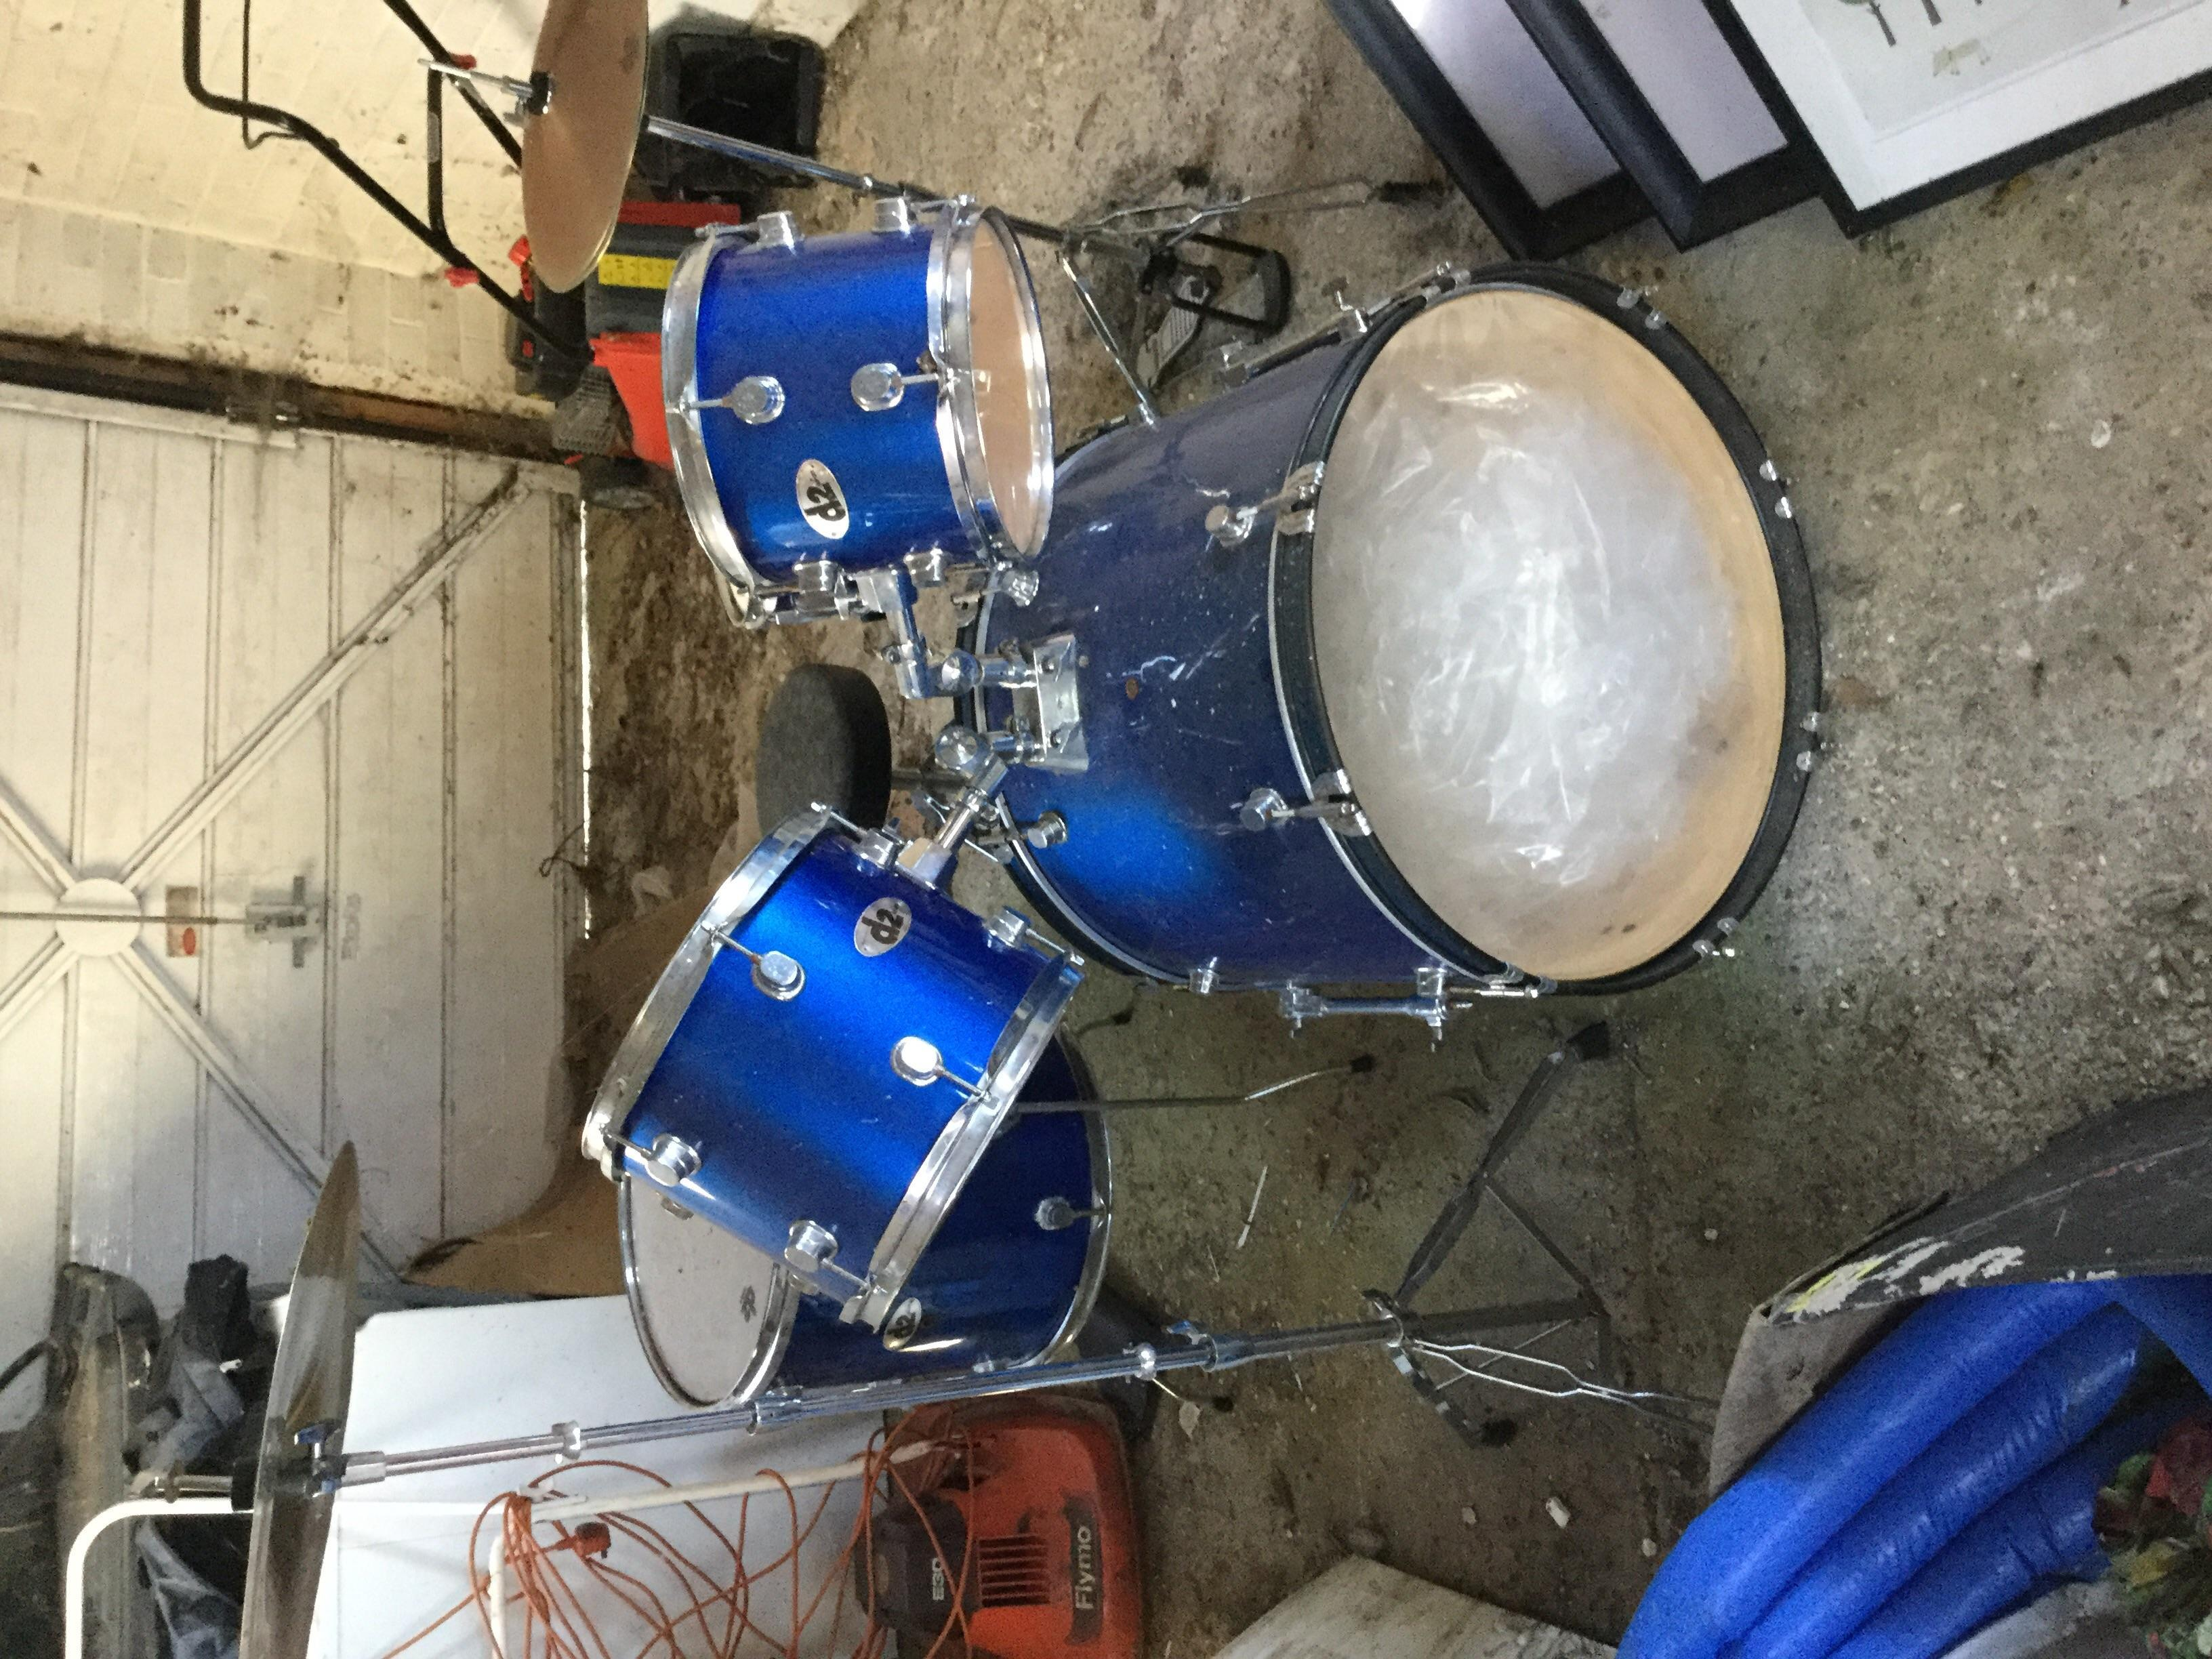 Drum kit with sticks and music